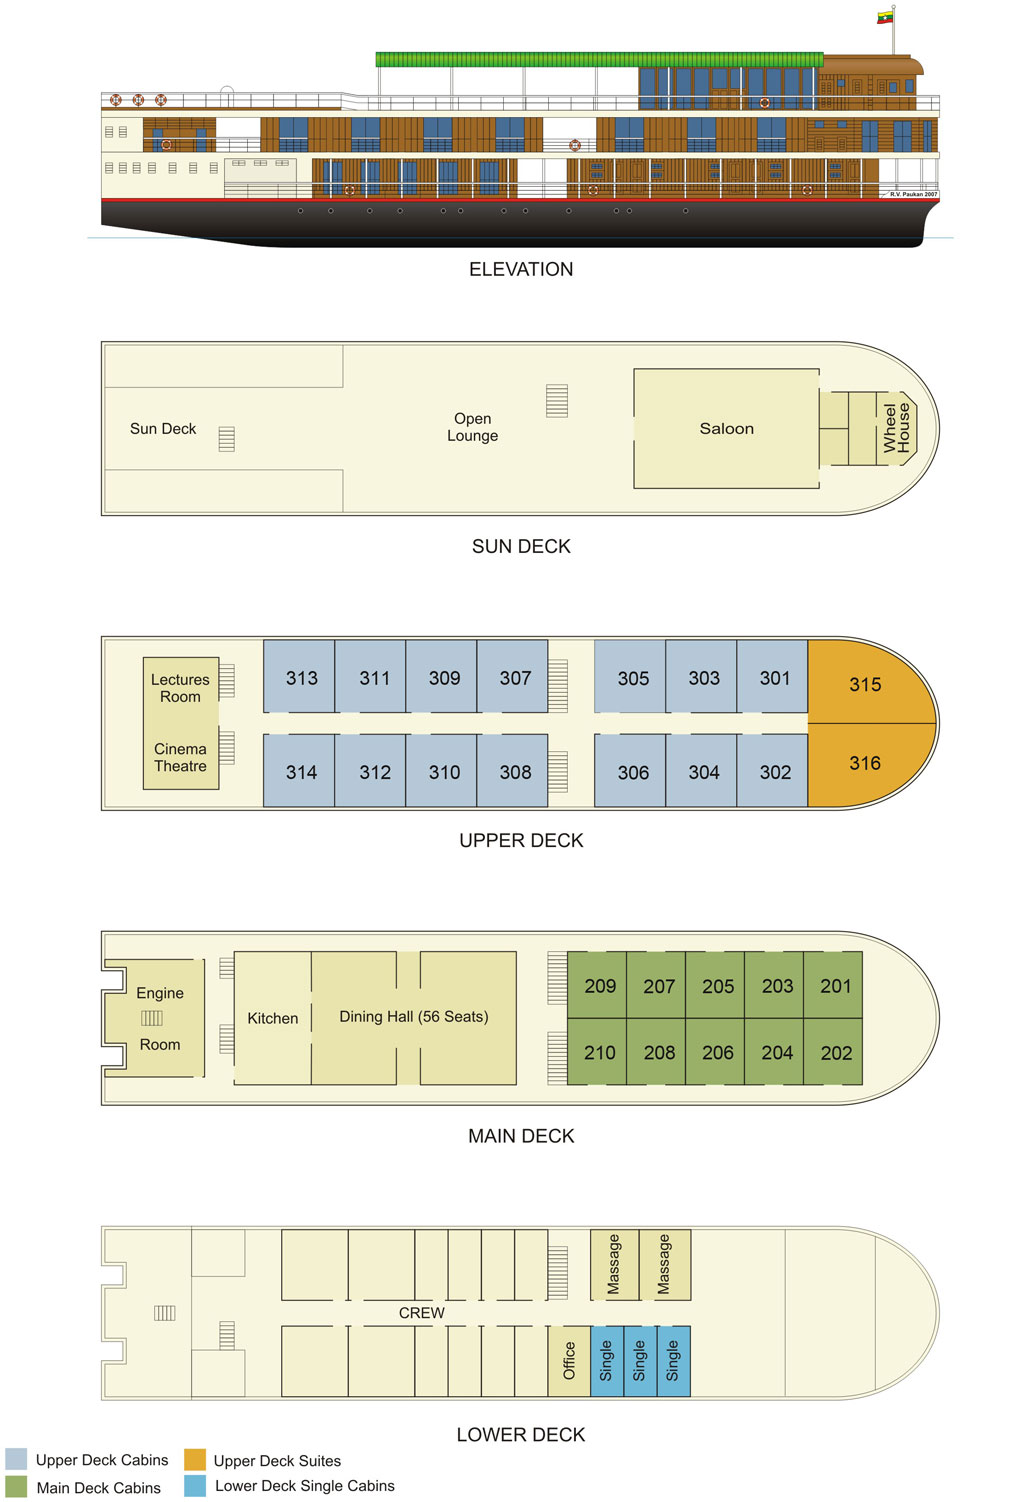 Cabin layout for Paukan 2007